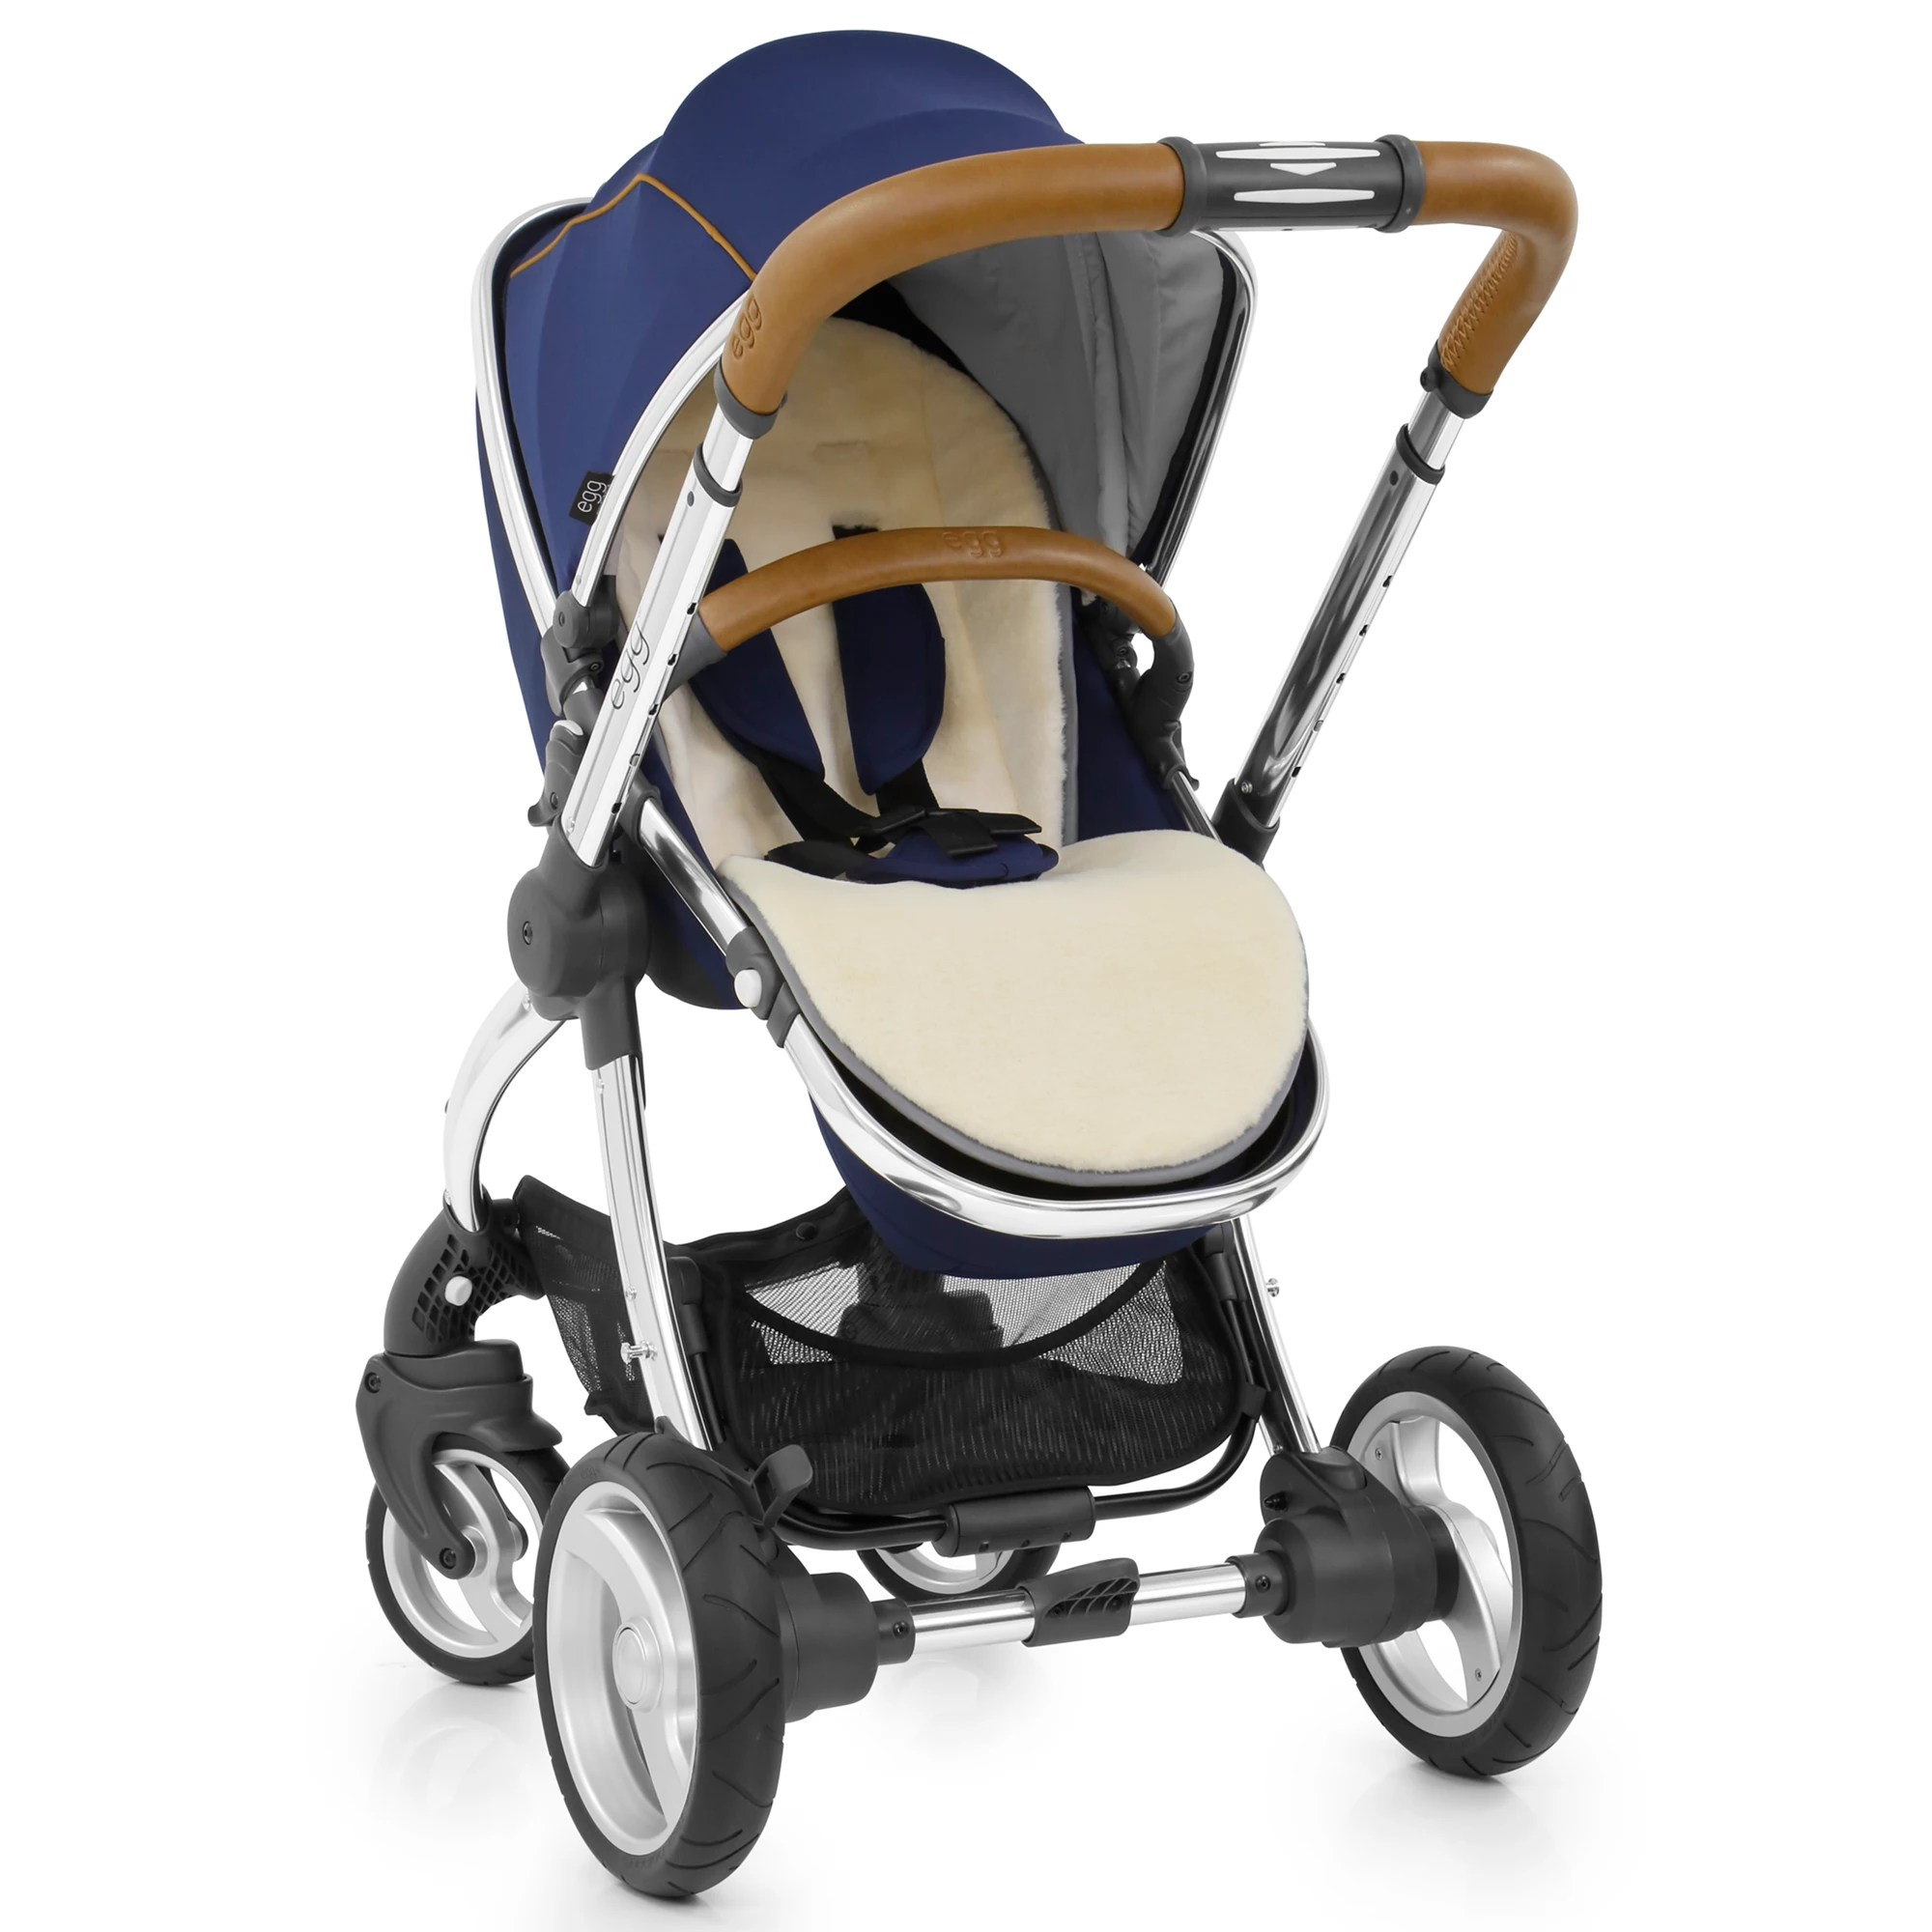 Egg Pushchair Liner Egg Stroller Base And Seat With Fleece Liner Regal Navy